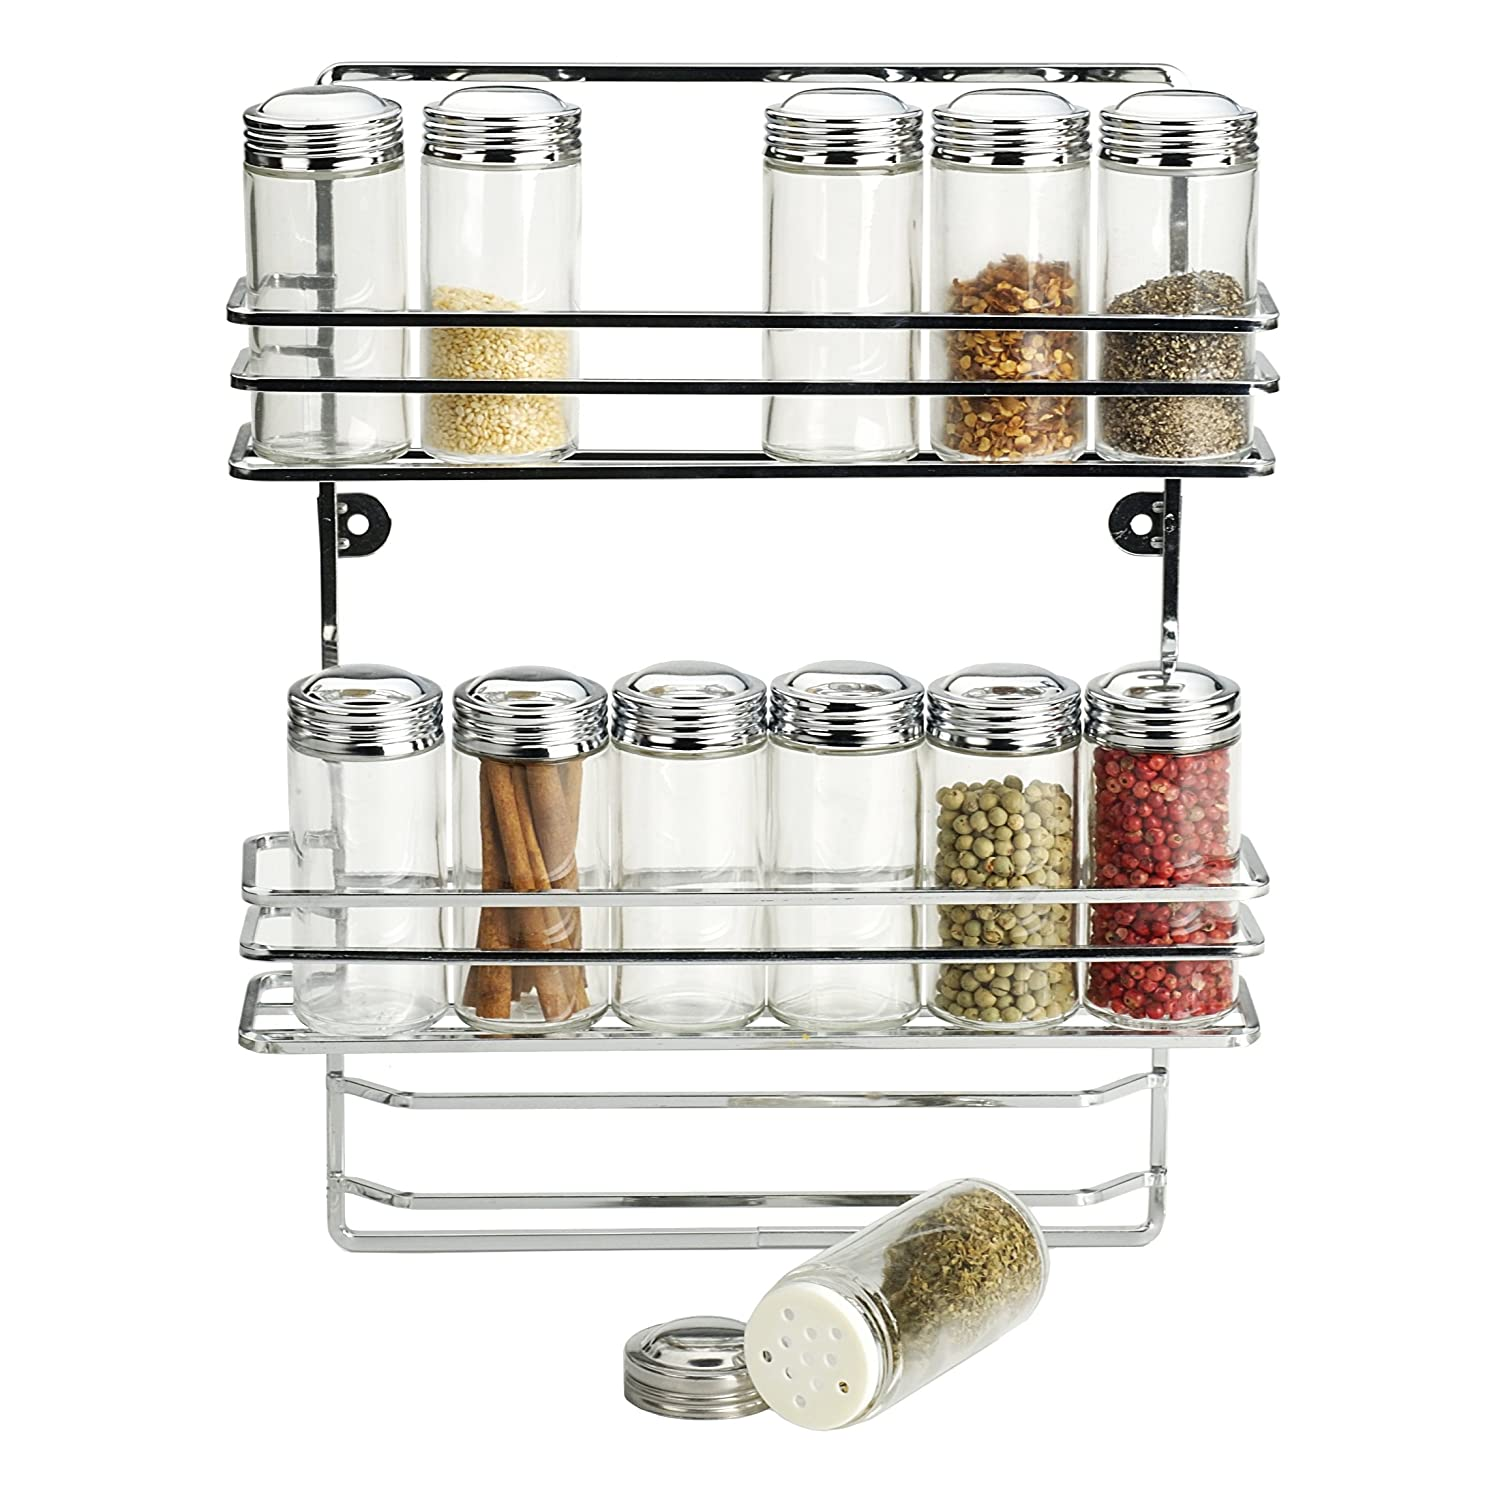 Amazon.com: RSVP International 12-bottle Endurance Wall Mount Spice Rack.:  Office Products